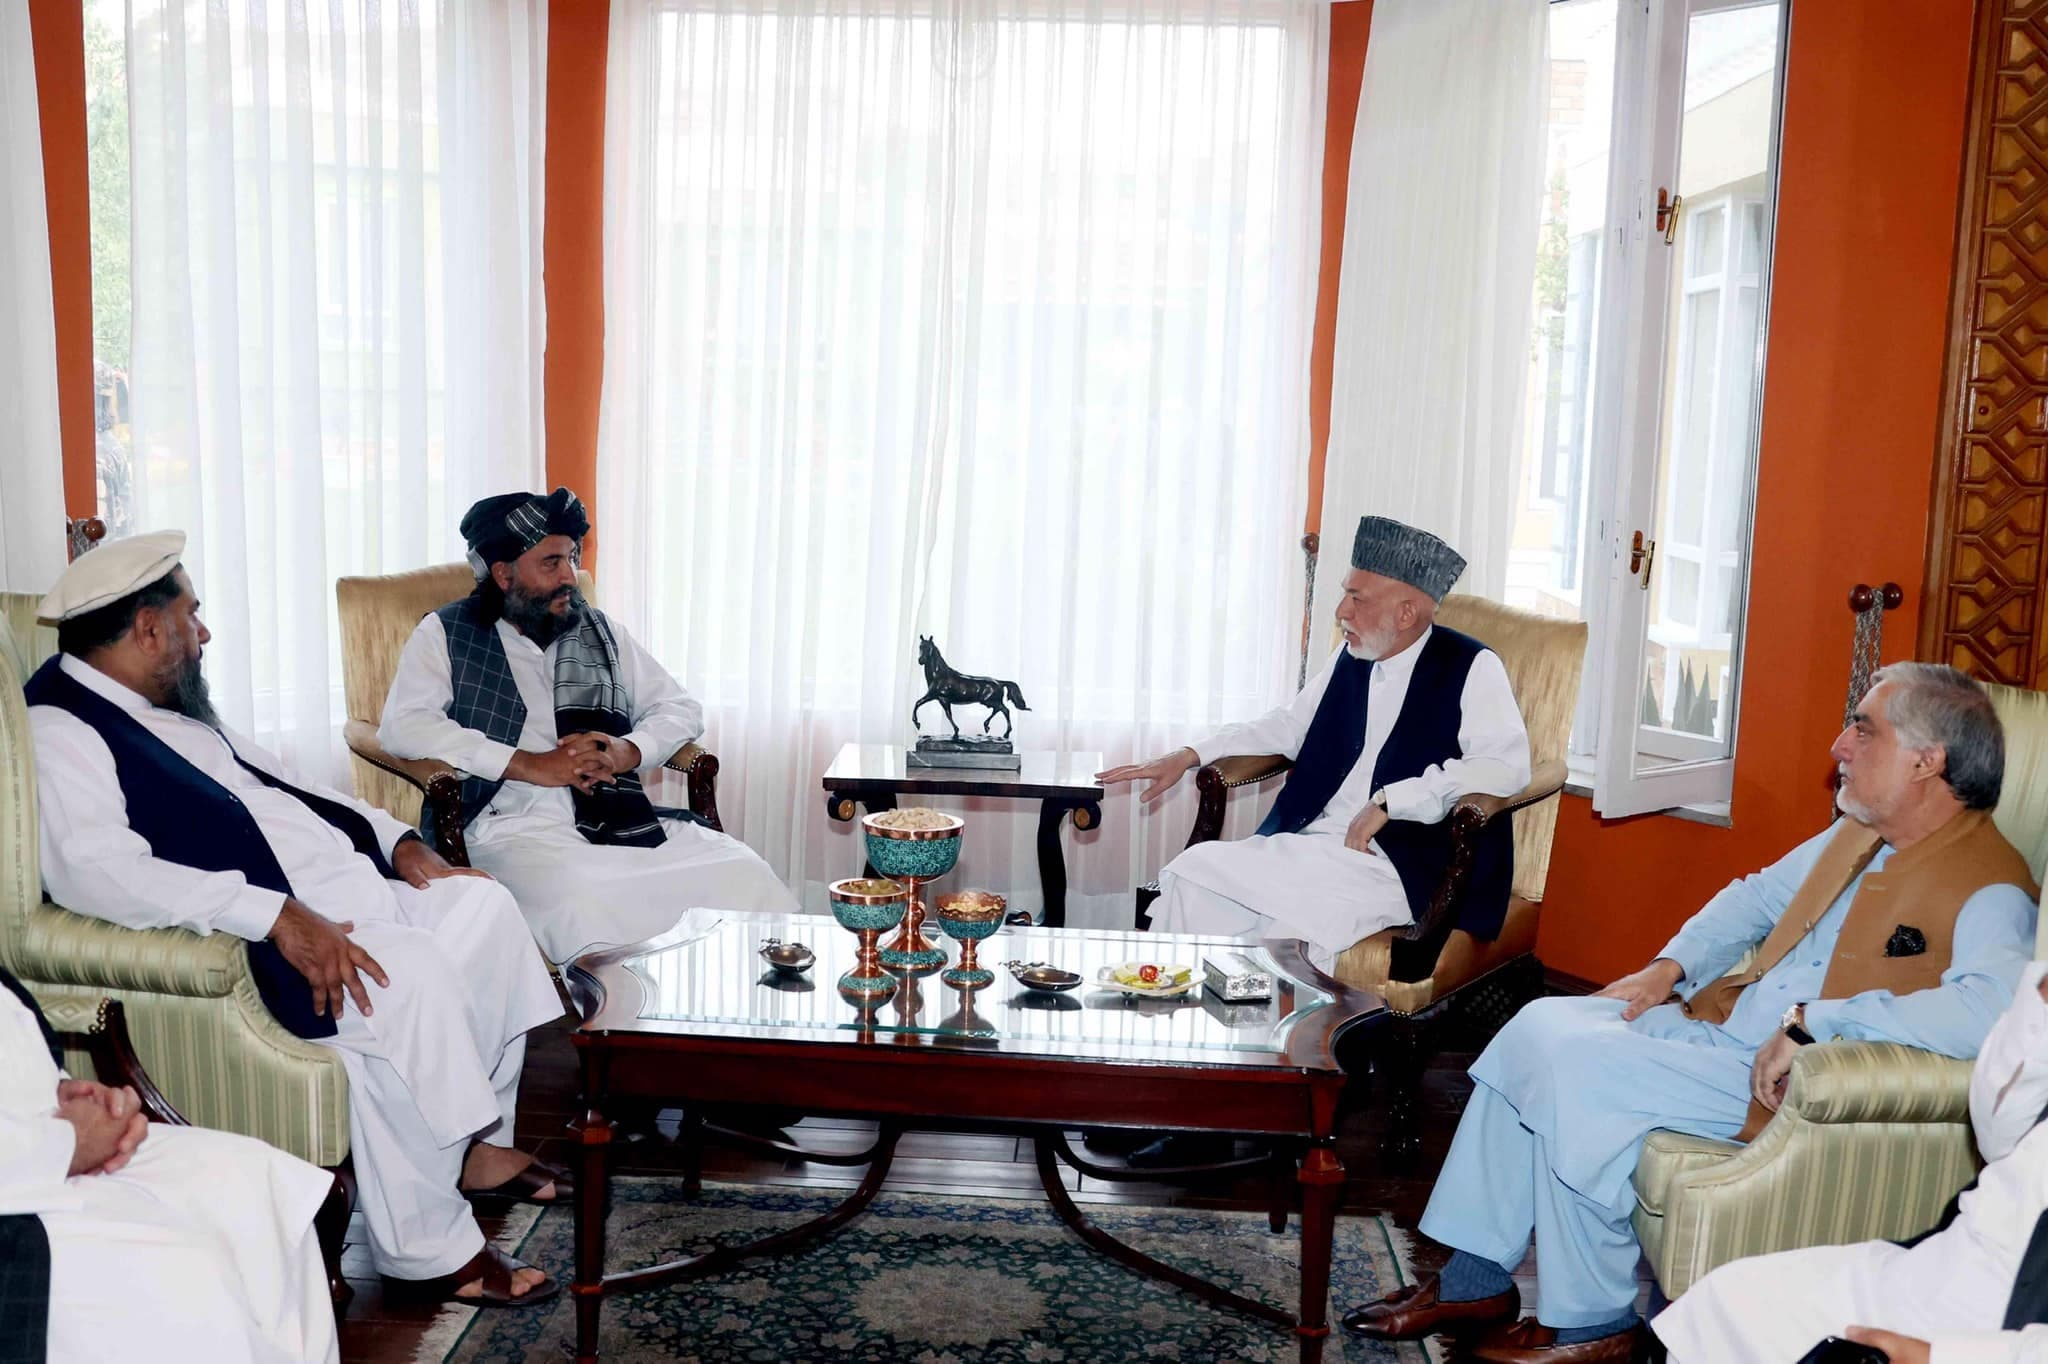 Former Afghan President Hamid Karzai and the chairman of the High Council for National Reconciliation, Abdullah Abdullah, meet with Abdul Rahman Mansour, the acting governor of Kabul for the Taliban. (Twitter/DrabdullahCE)